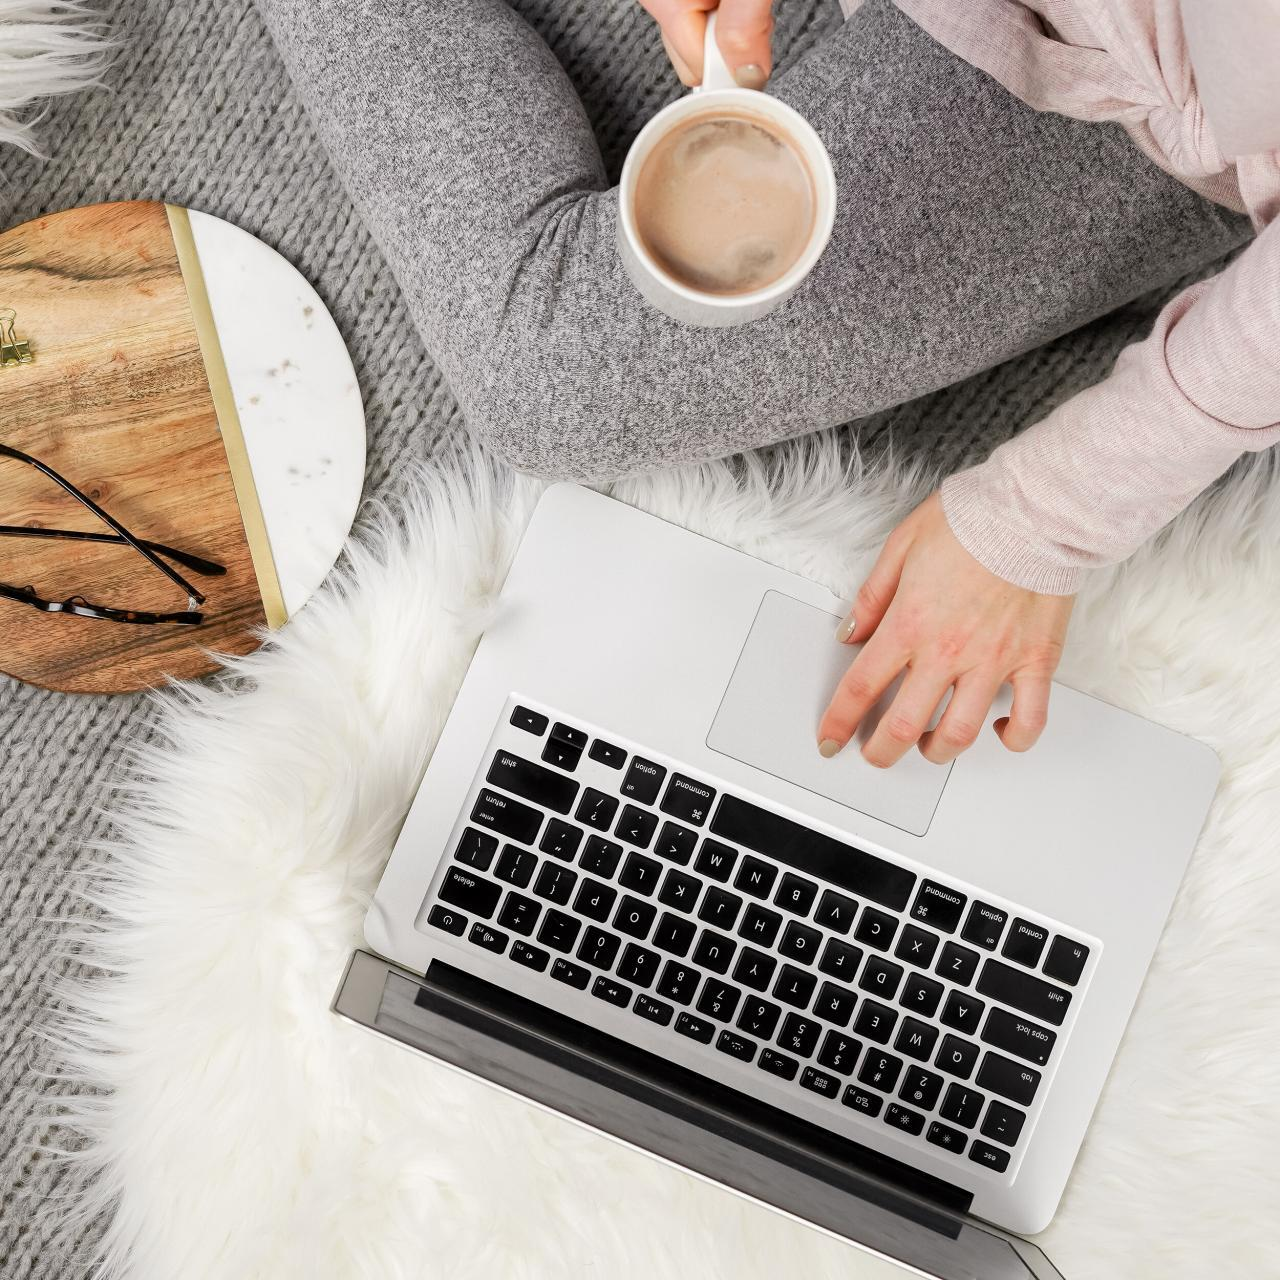 25 Things I Wish I Knew Before Starting A Blog